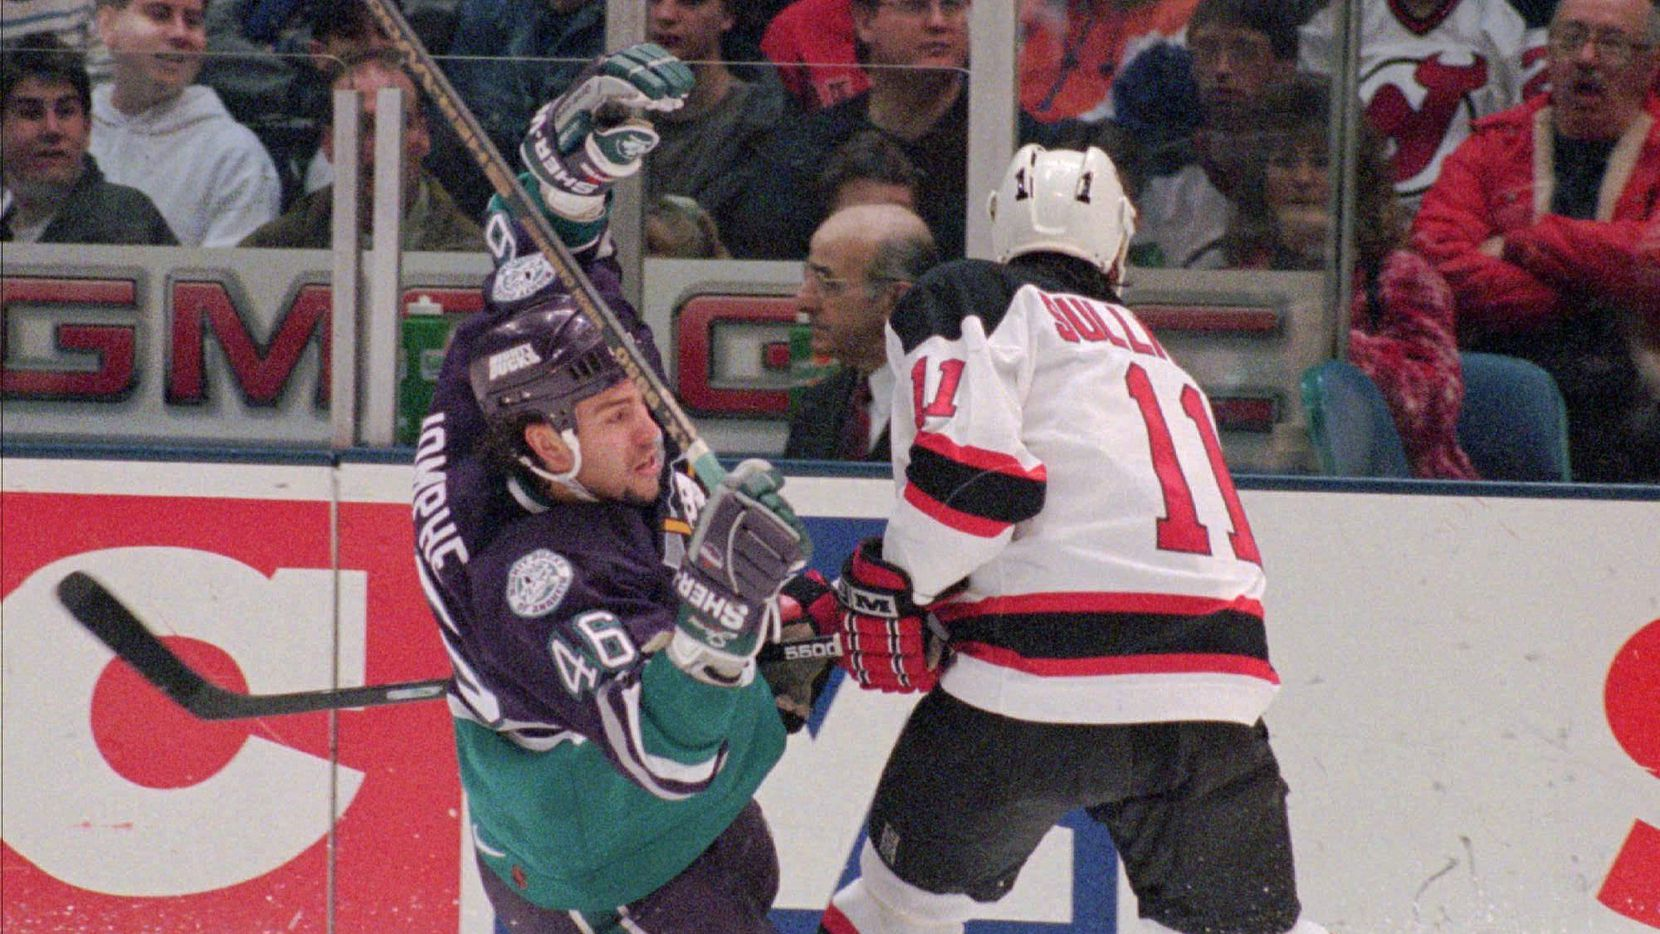 Anaheim Mighty Ducks' J.F. Jomphe (46) is checked to the ice by New Jersey Devils' Steve Sullivan (11) during a 1996 game.